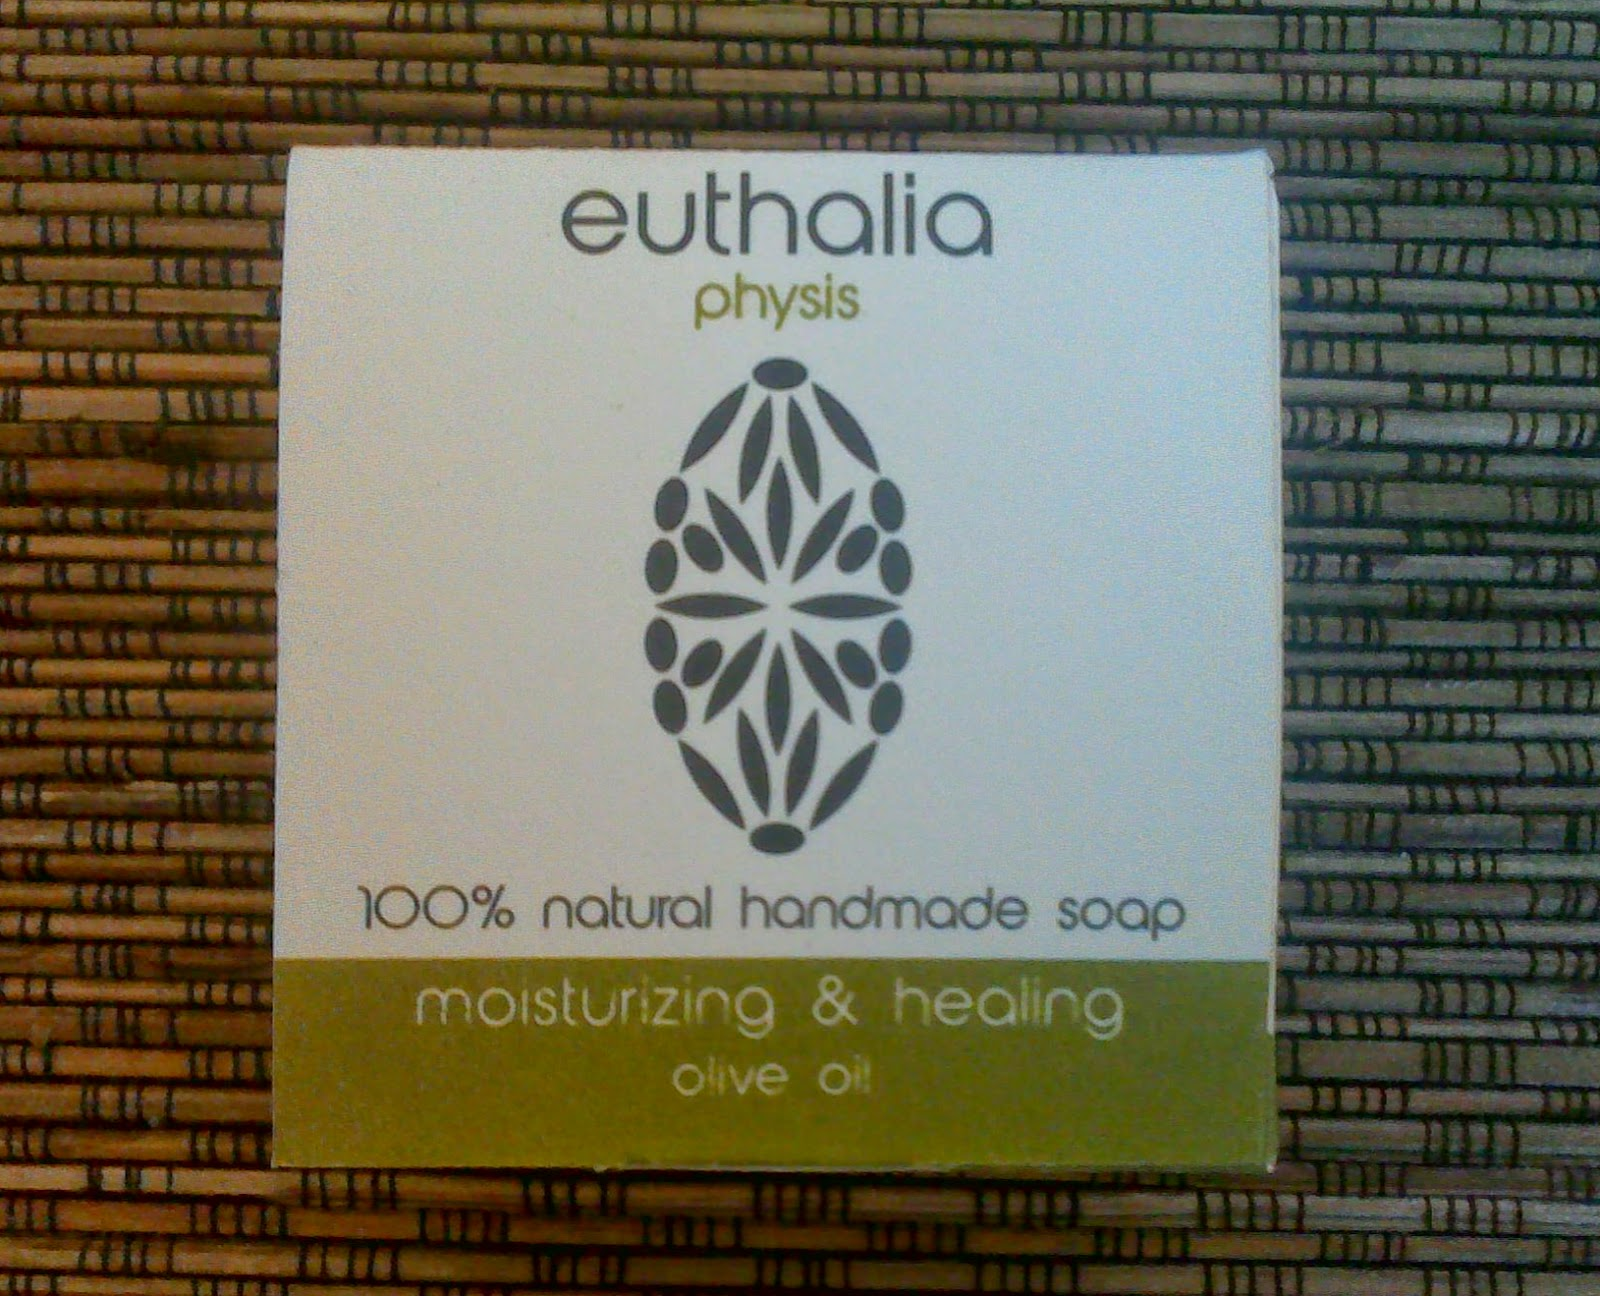 Euthalia physis 100% natural handmade soap